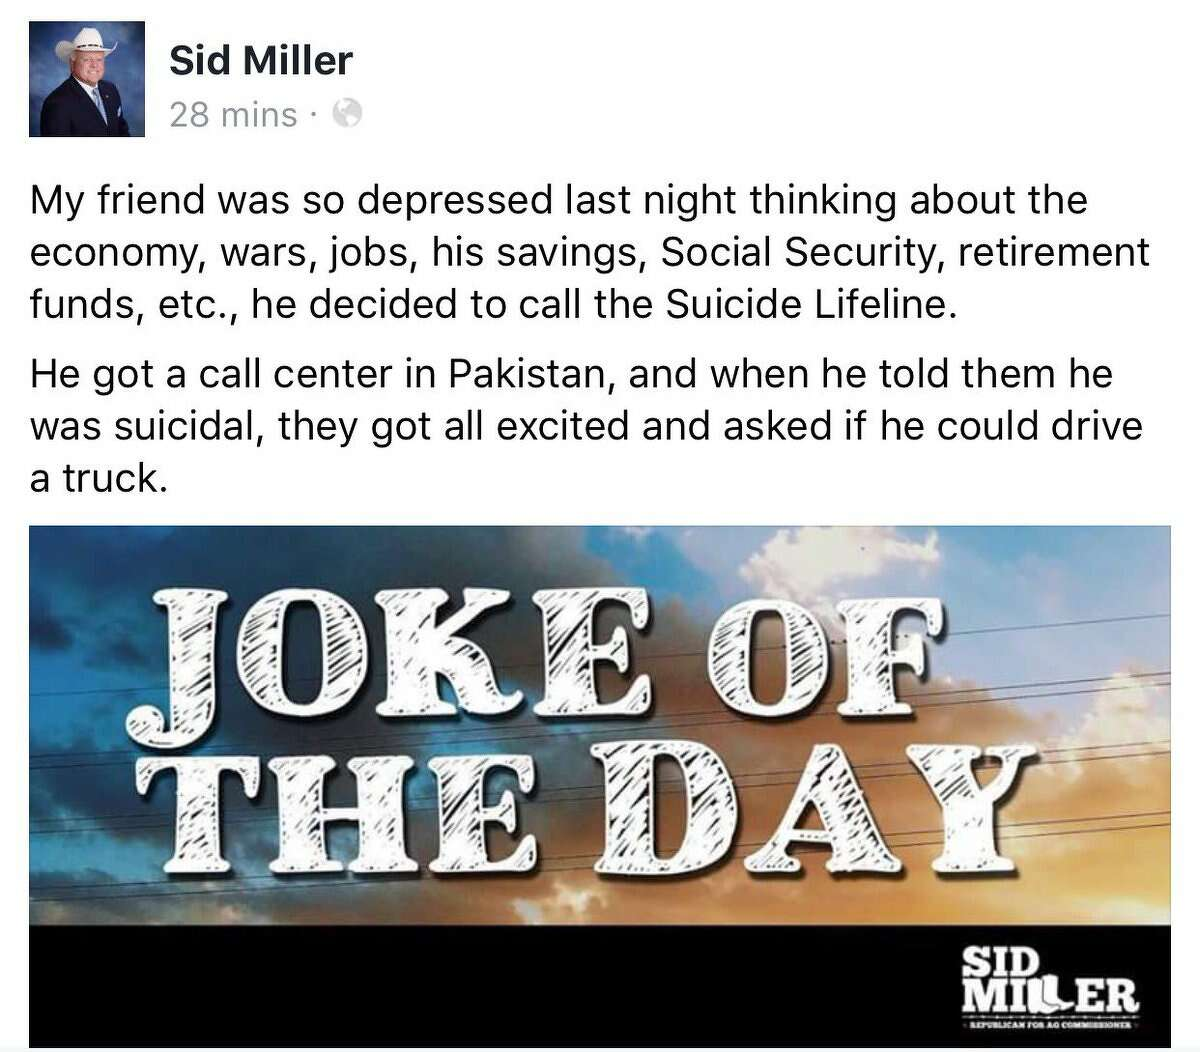 """Texas politician Sid Miller was criticized after he shared a racially insensitive """"joke of the day"""" that talked about suicide. Continue through the photos to see the other controversies involving Miller that have made headlines."""